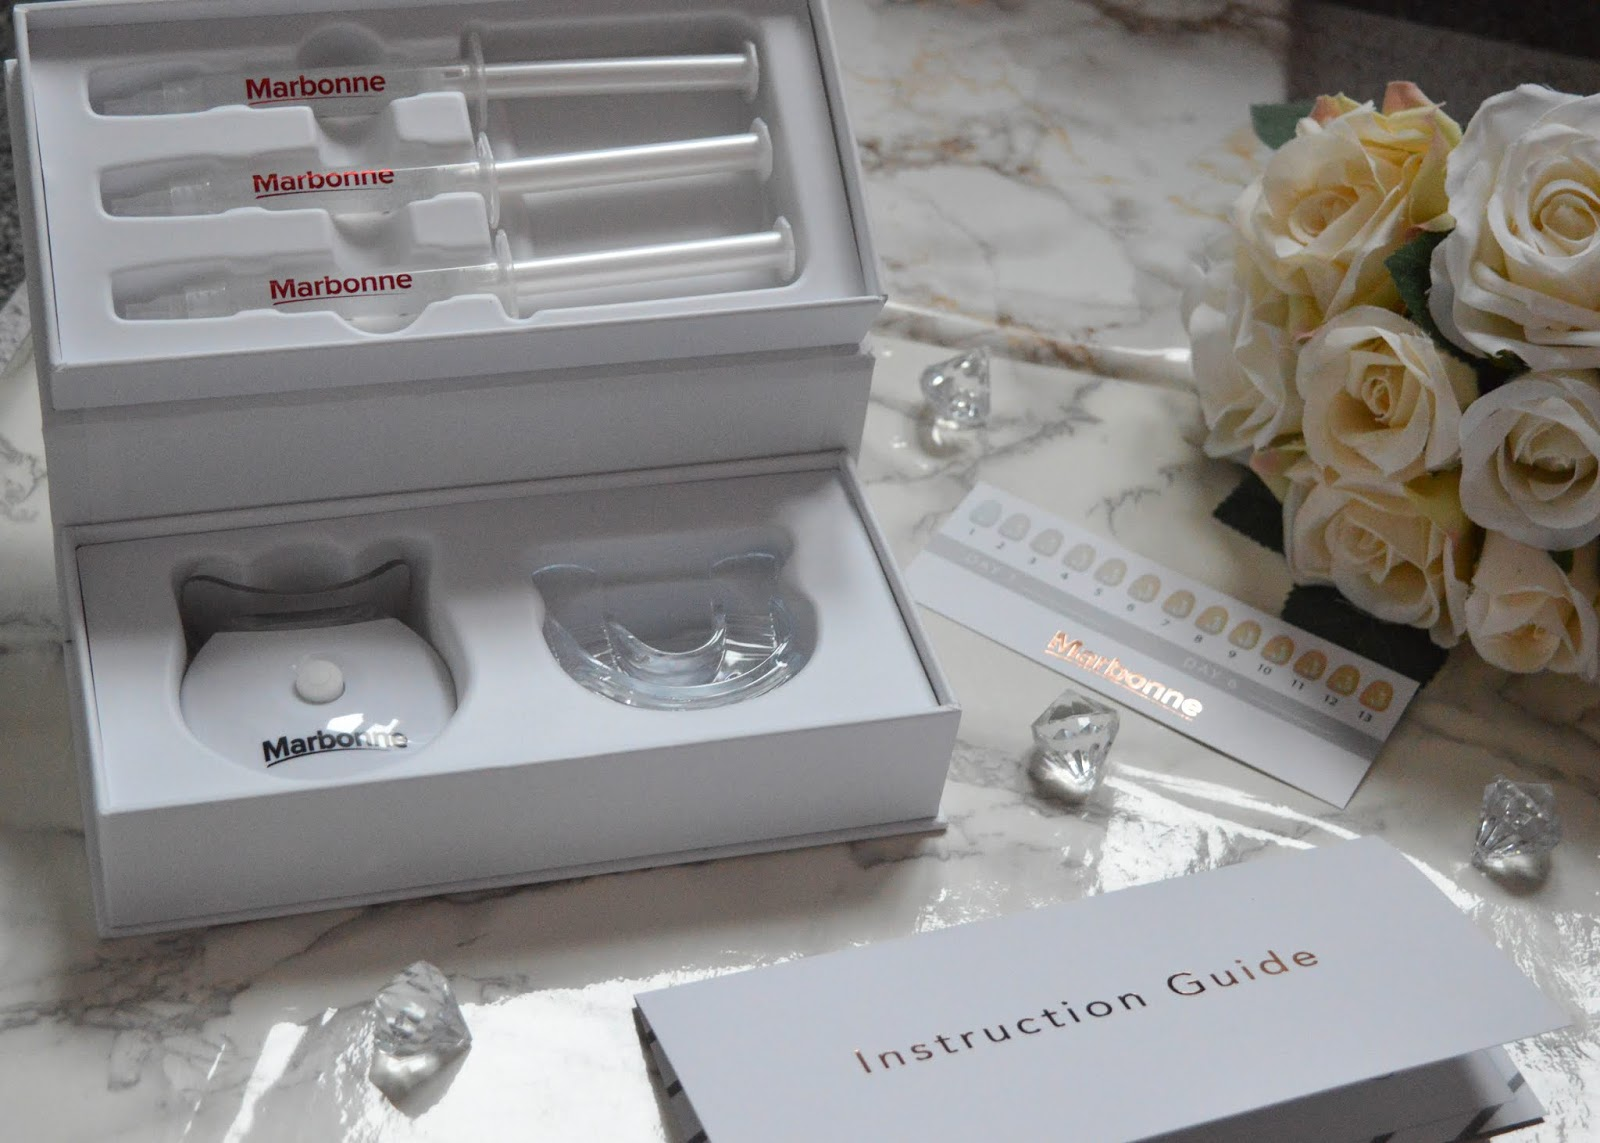 Marbonne Teeth Whitening Kit Review